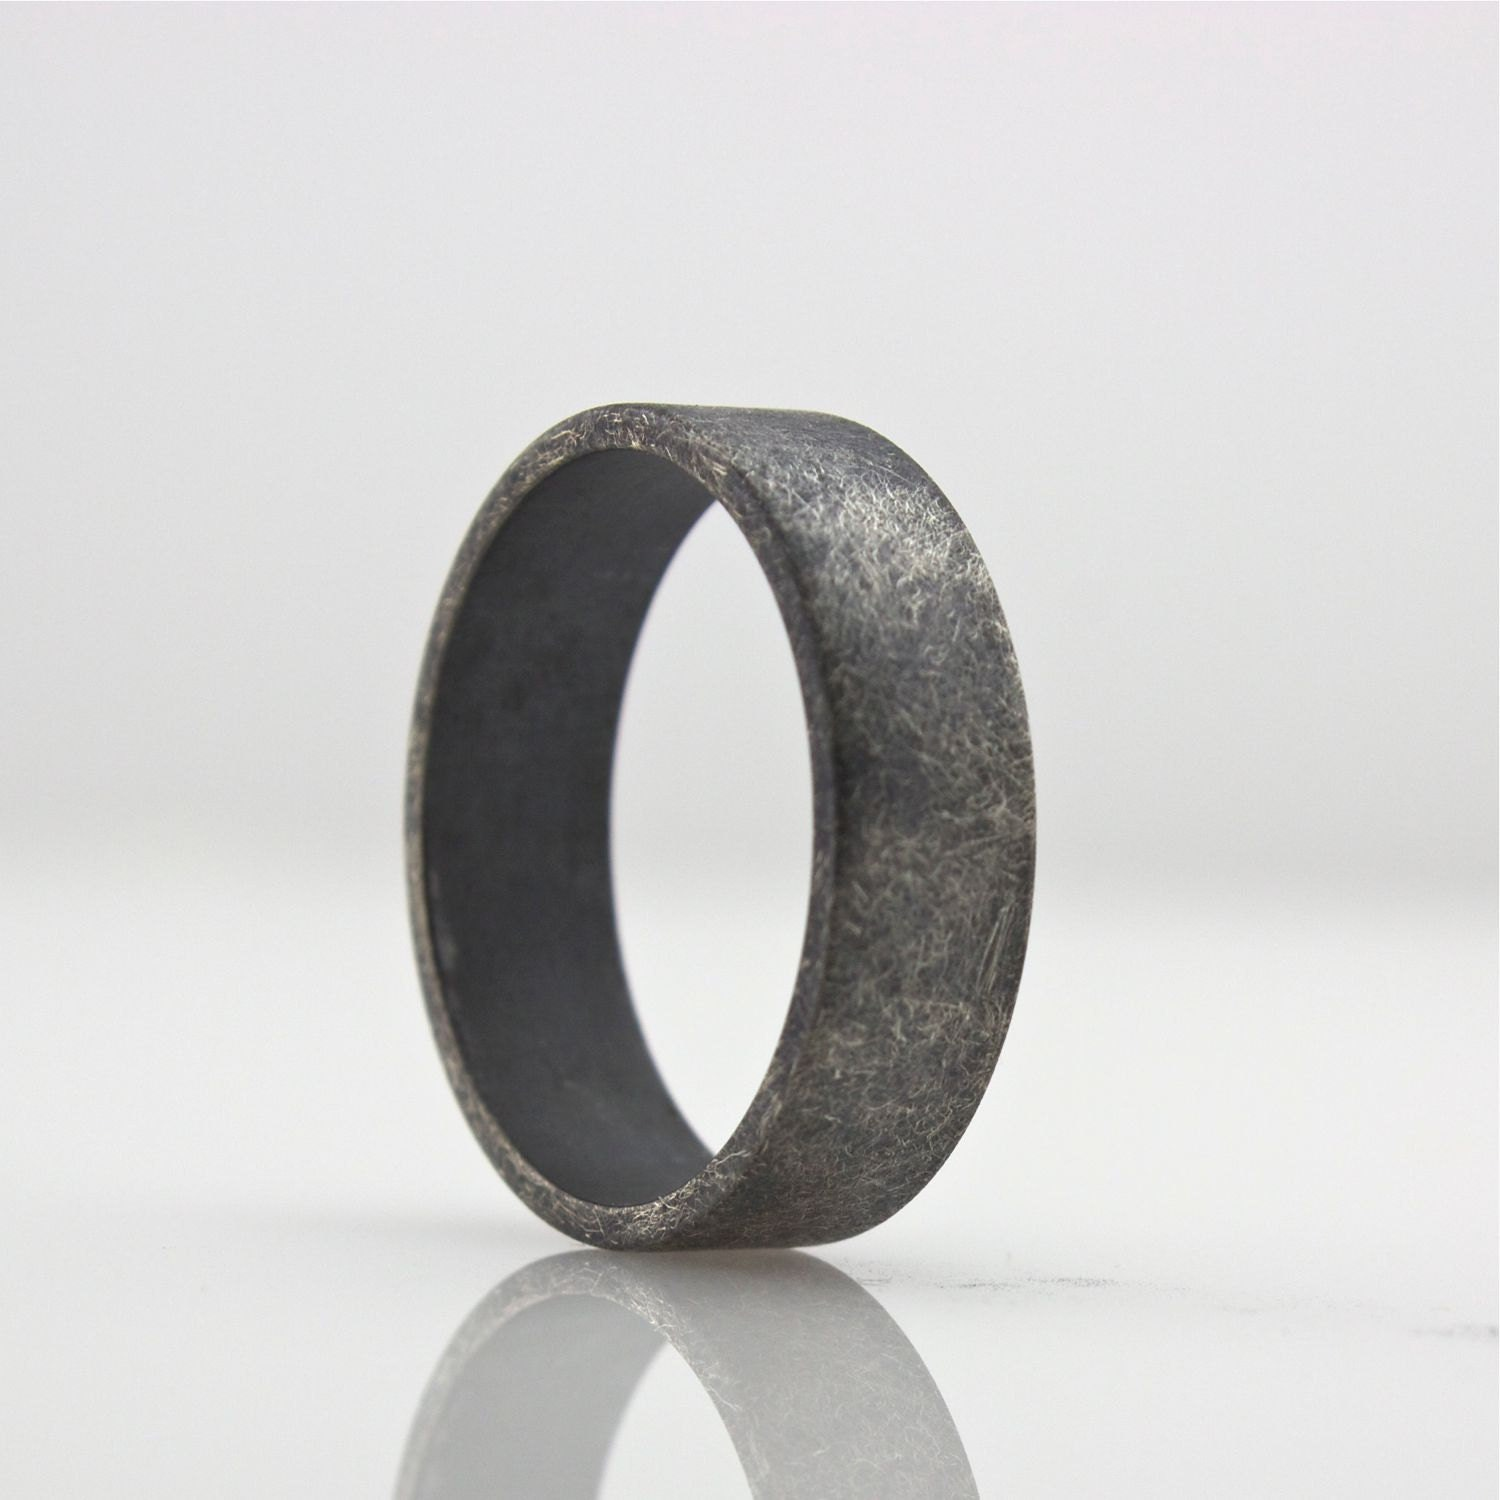 wedding of tungsten for pics fabulous black ring rings luxury mens jewishbless beautiful groom bands ashworthmairsgroup